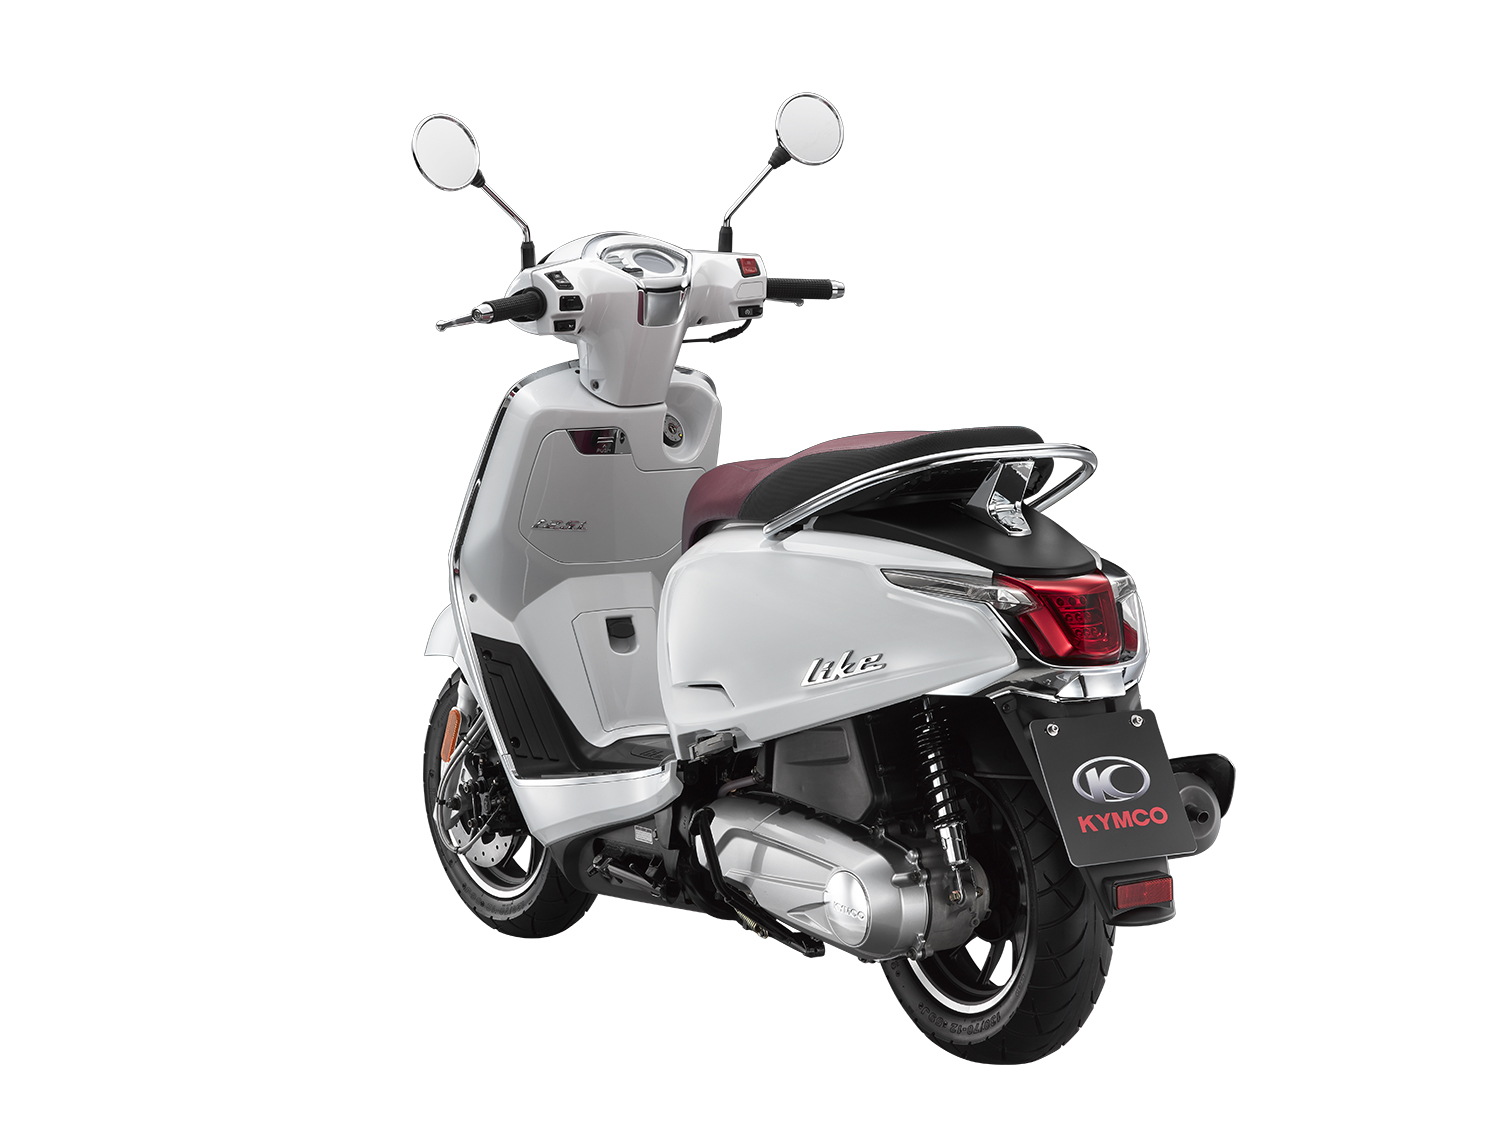 Kymco-Toulouse-New-Like-125i-cbs-3